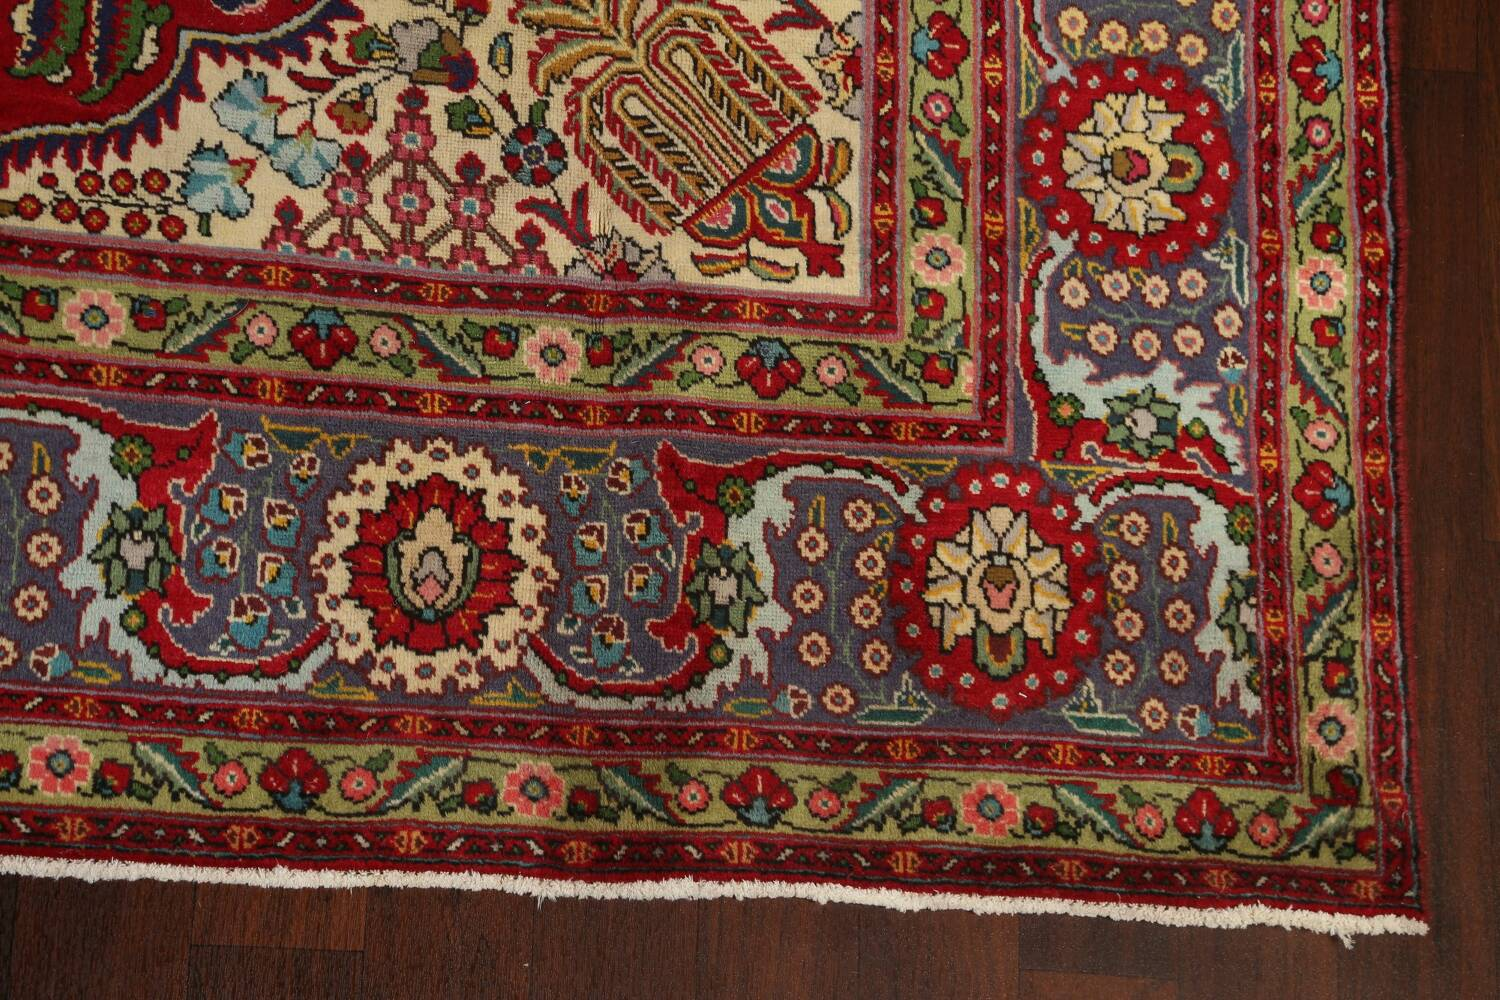 Floral Red Tabriz Persian Area Rug 8x12 image 5